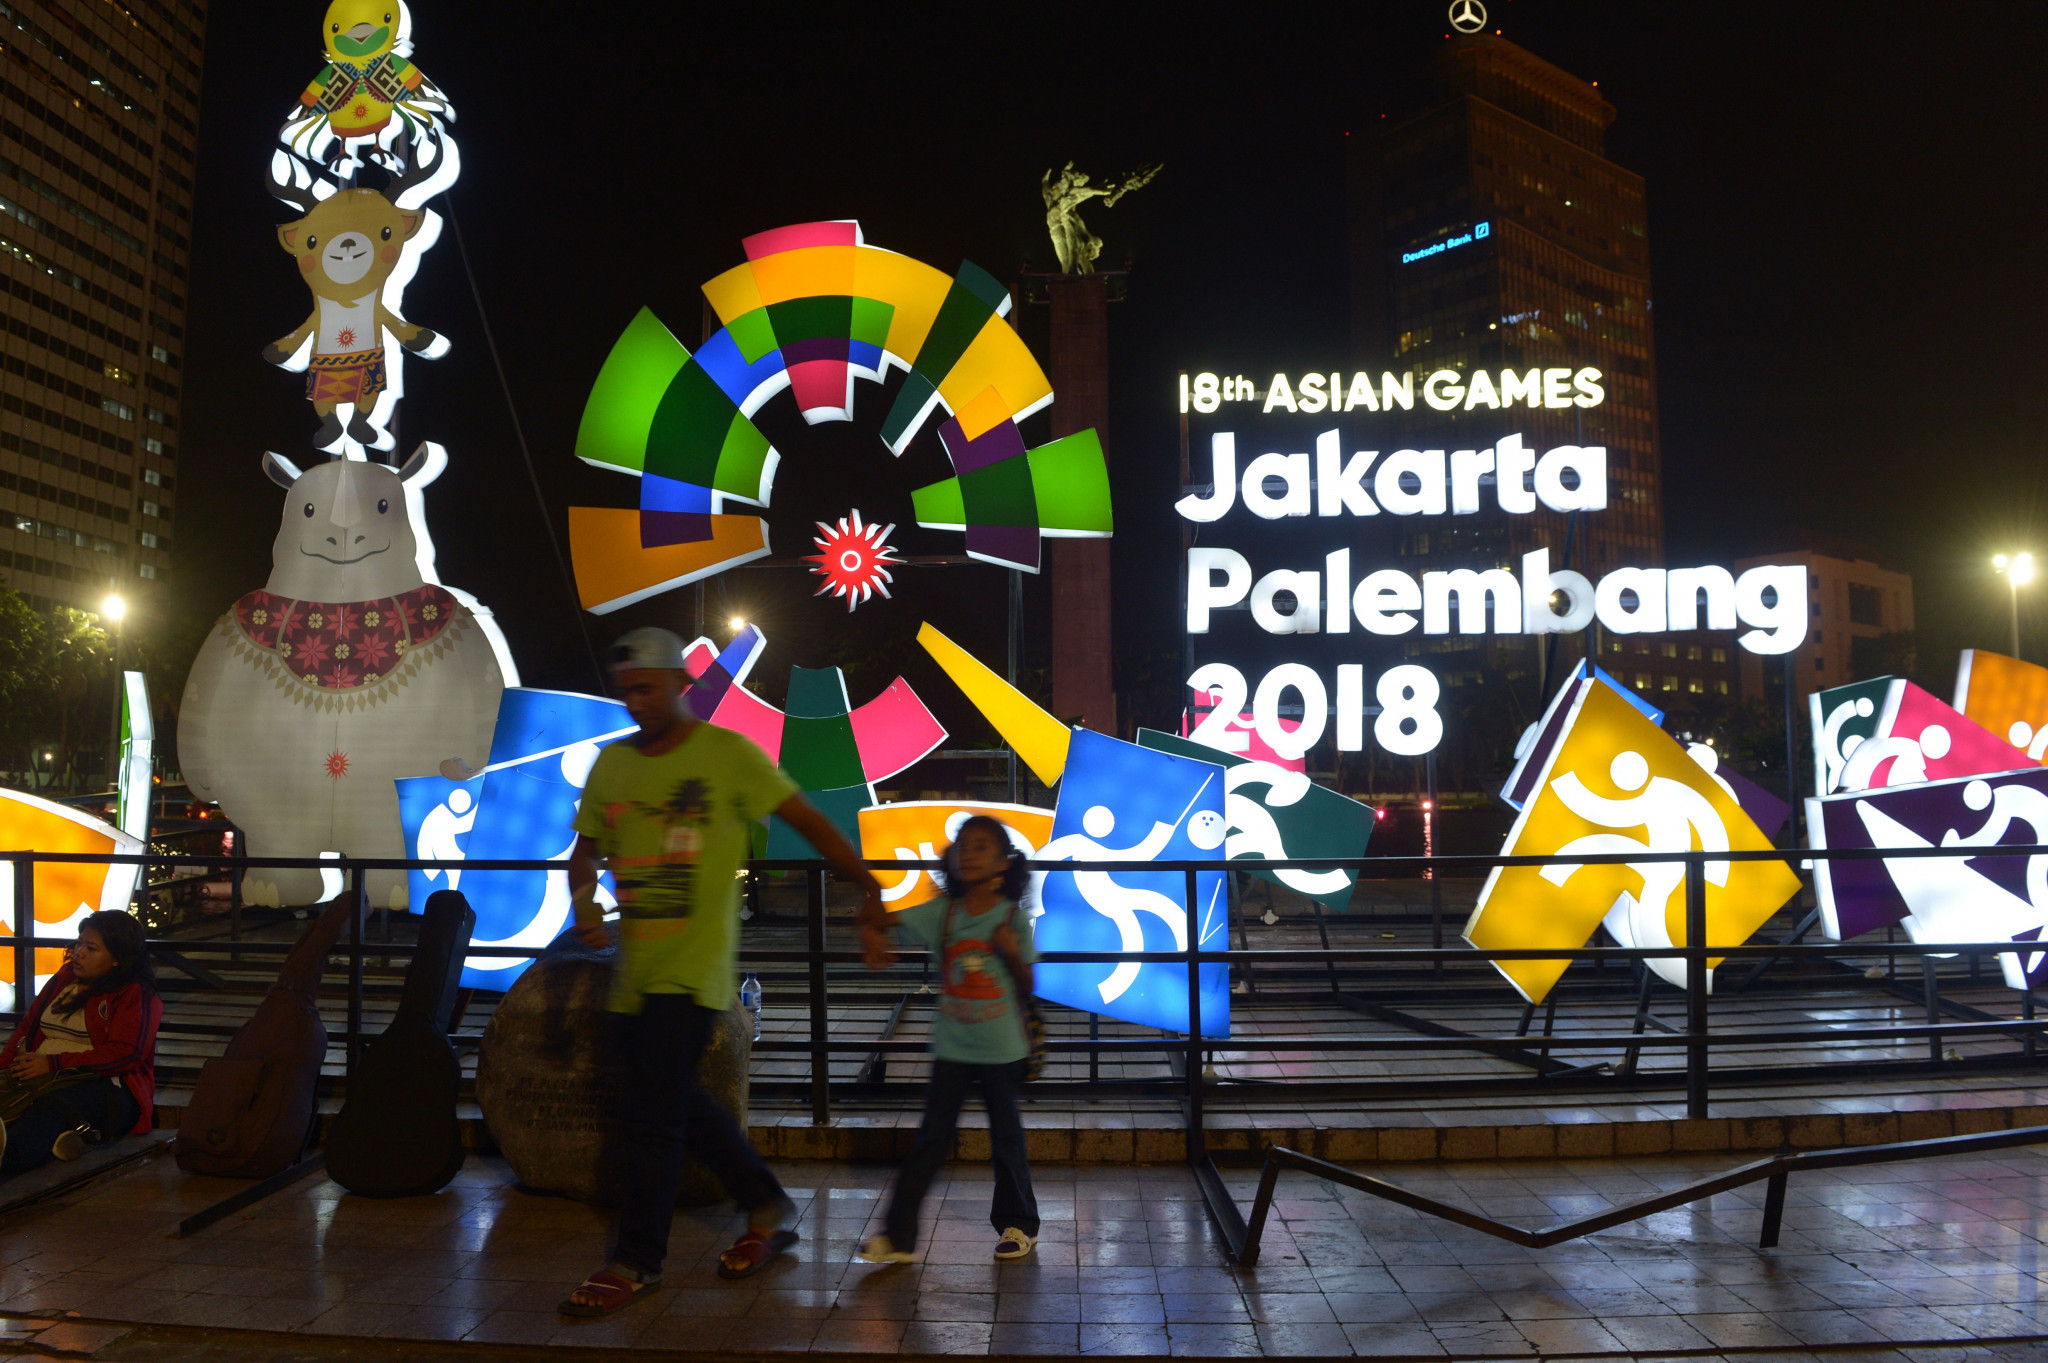 Preparations for the Jakarta Palembang Asian Games led discussions ©Getty Images